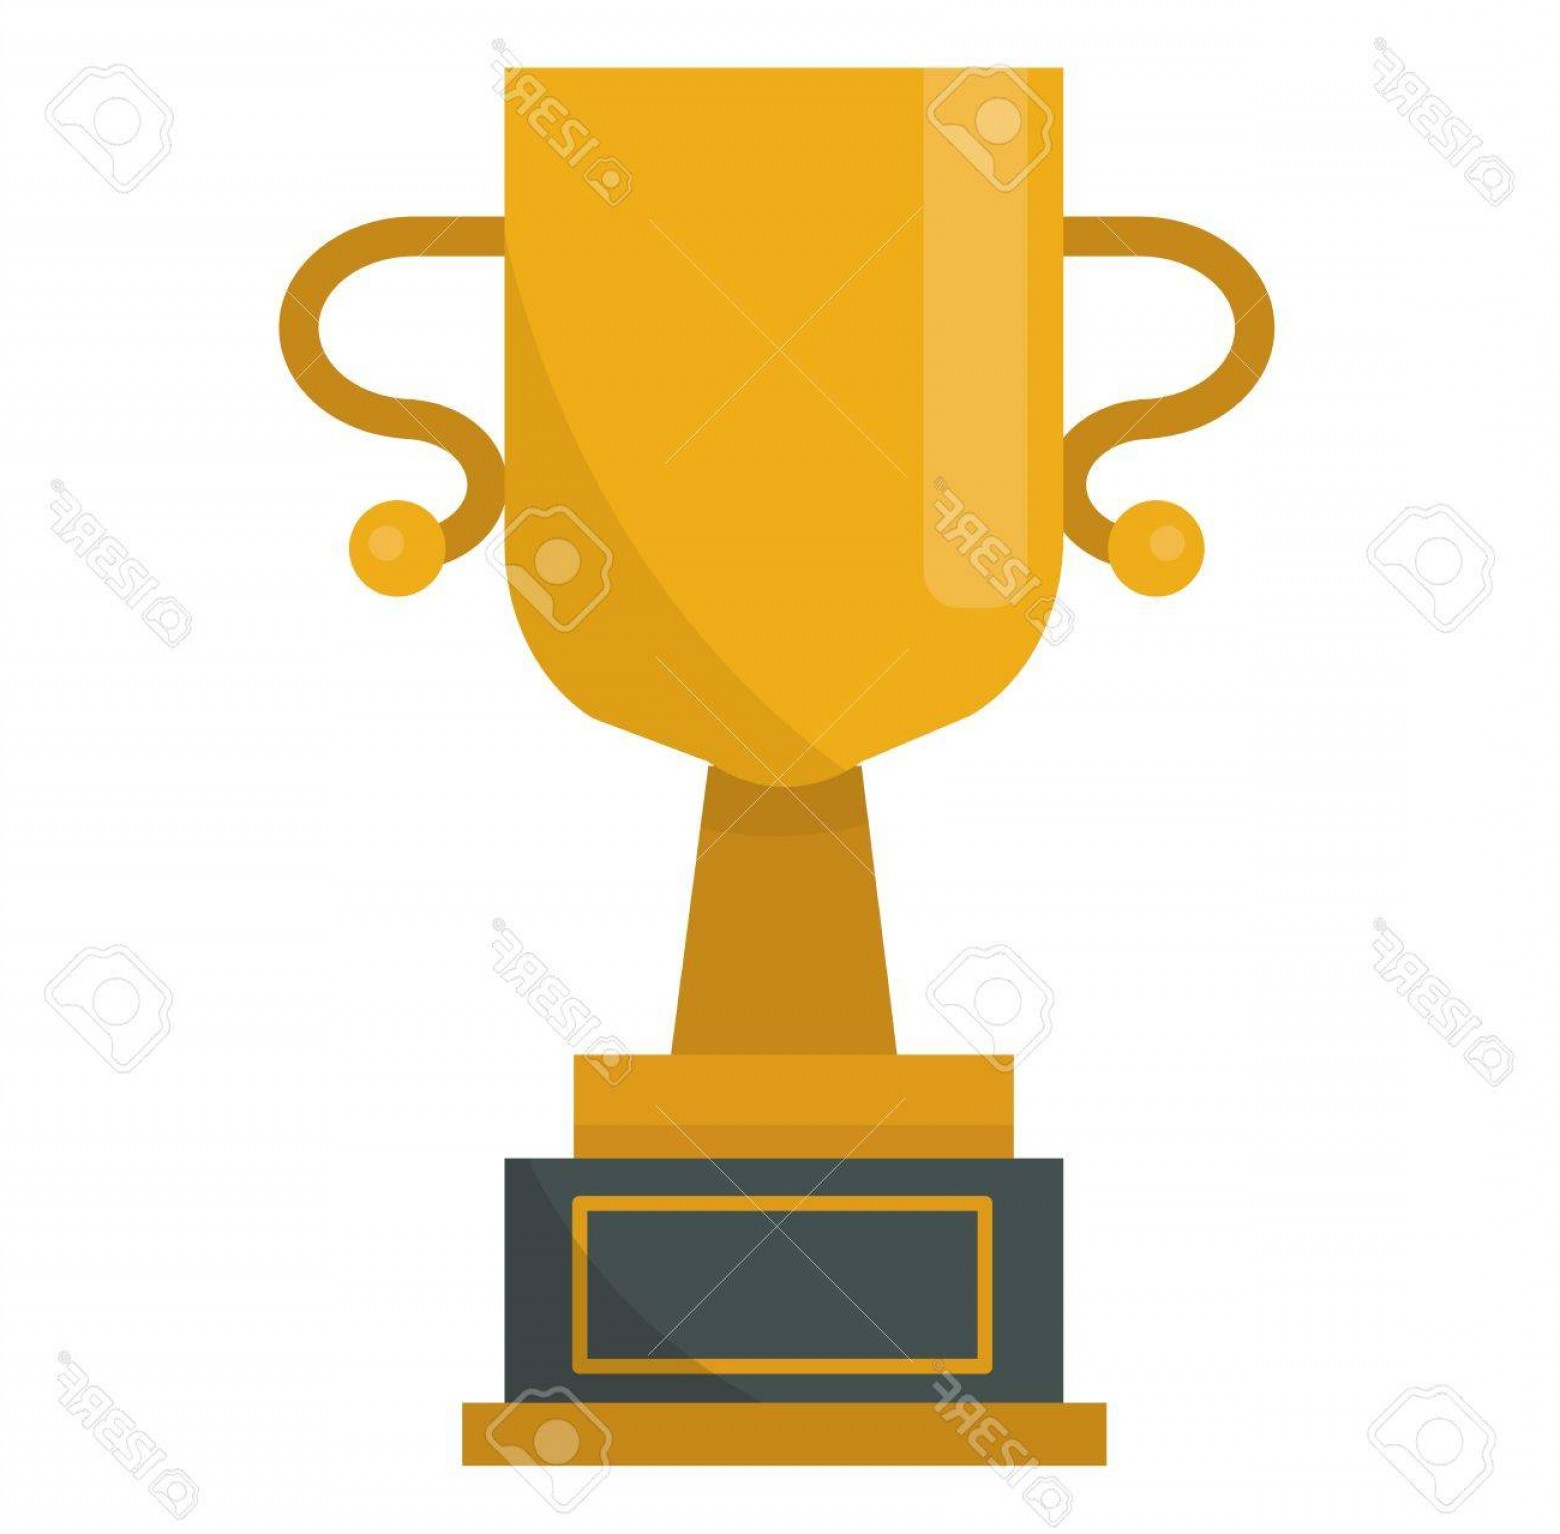 Gold Trophy Vector: Photostock Vector Gold Cup Trophy Vector Illustration Gold Cup Achievement Success Golden Award And Champion Object Me